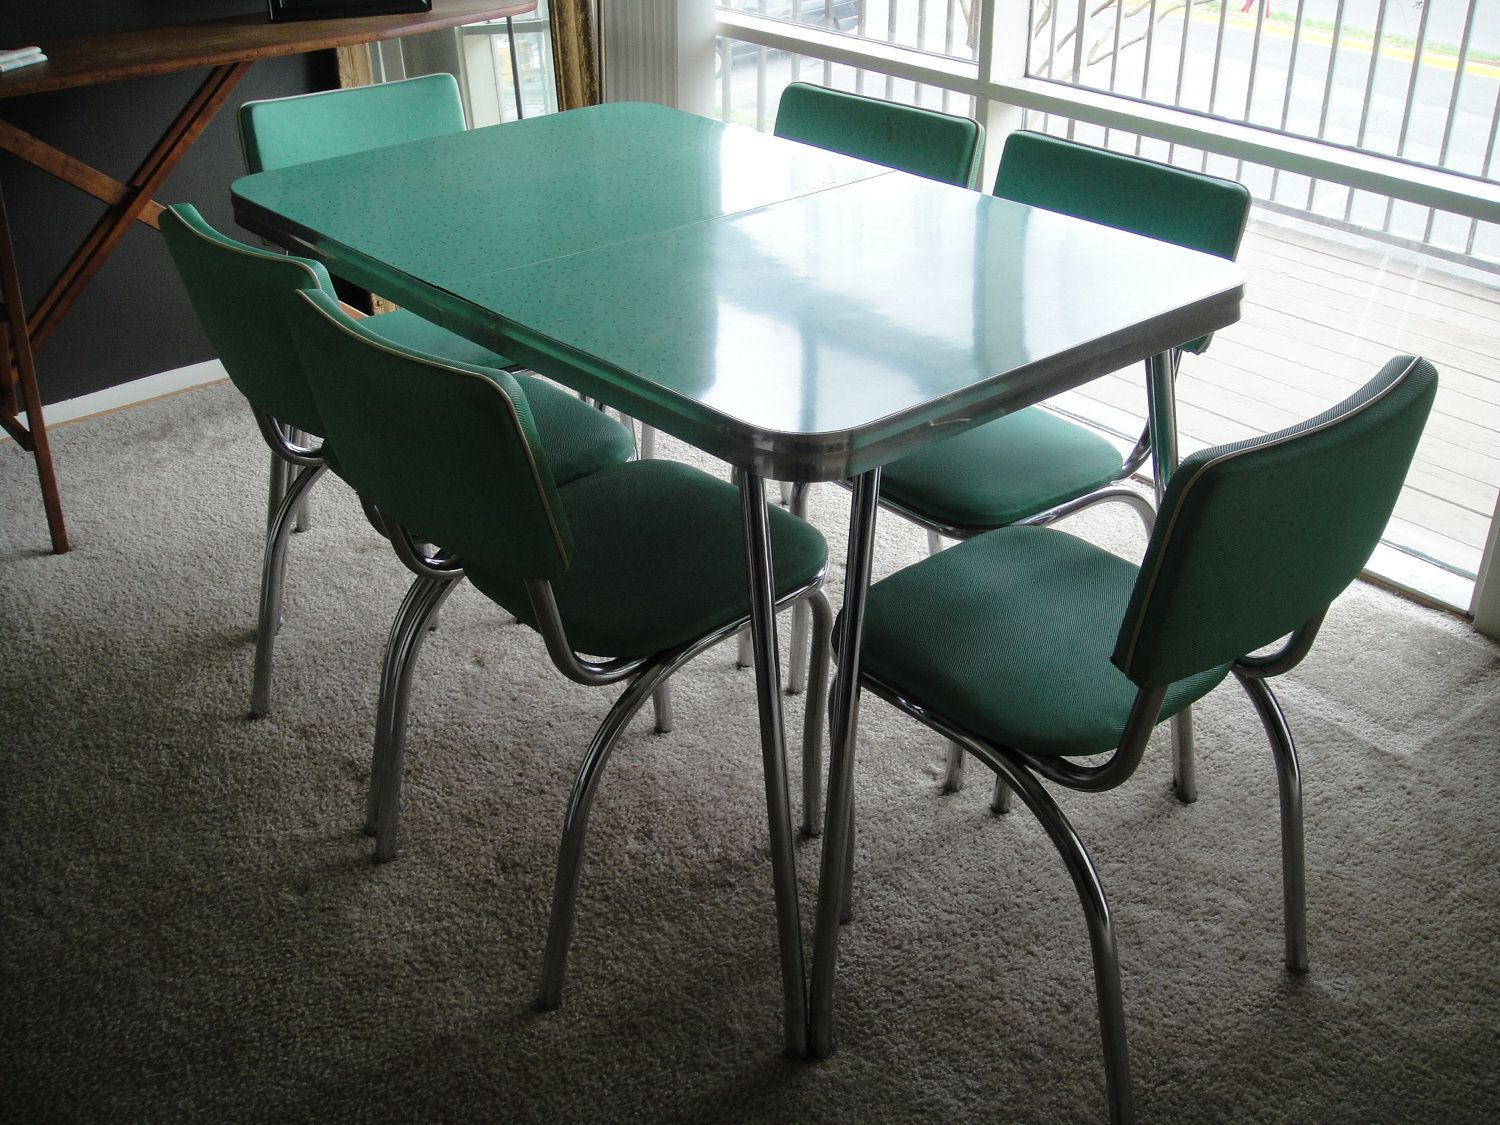 vintage kitchen tables RESERVED s Kitchen Table and Chairs Mint Dining Set with Six Chairs Formica with Chrome Legs and Details PICK UP ONLy